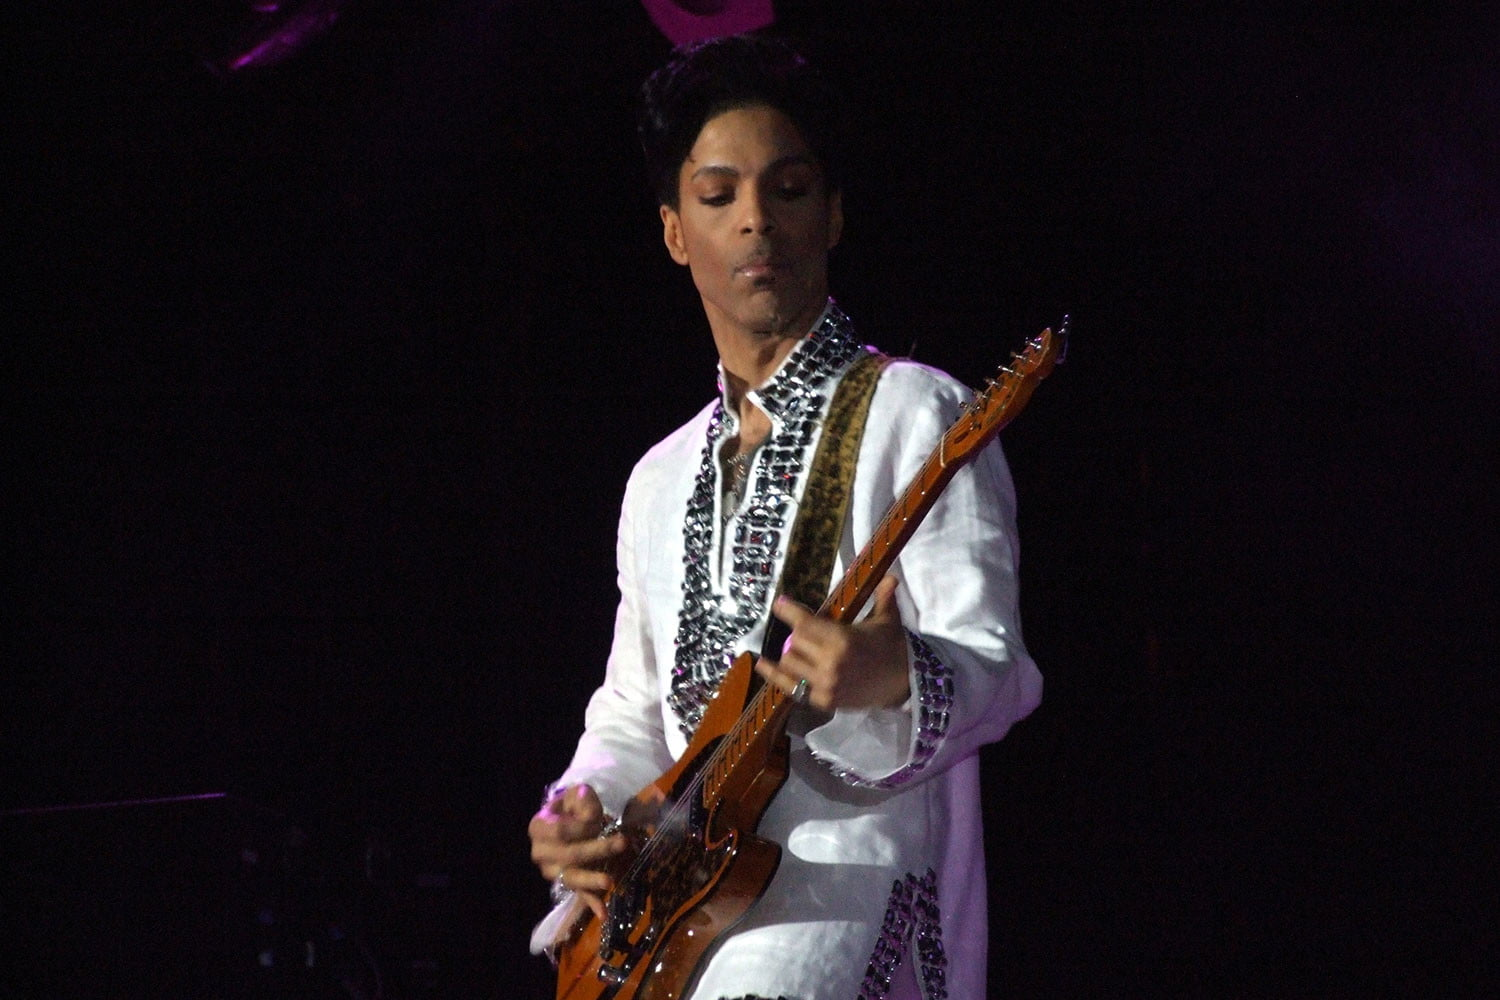 prince tribute 1958 2016 in memoriam 007